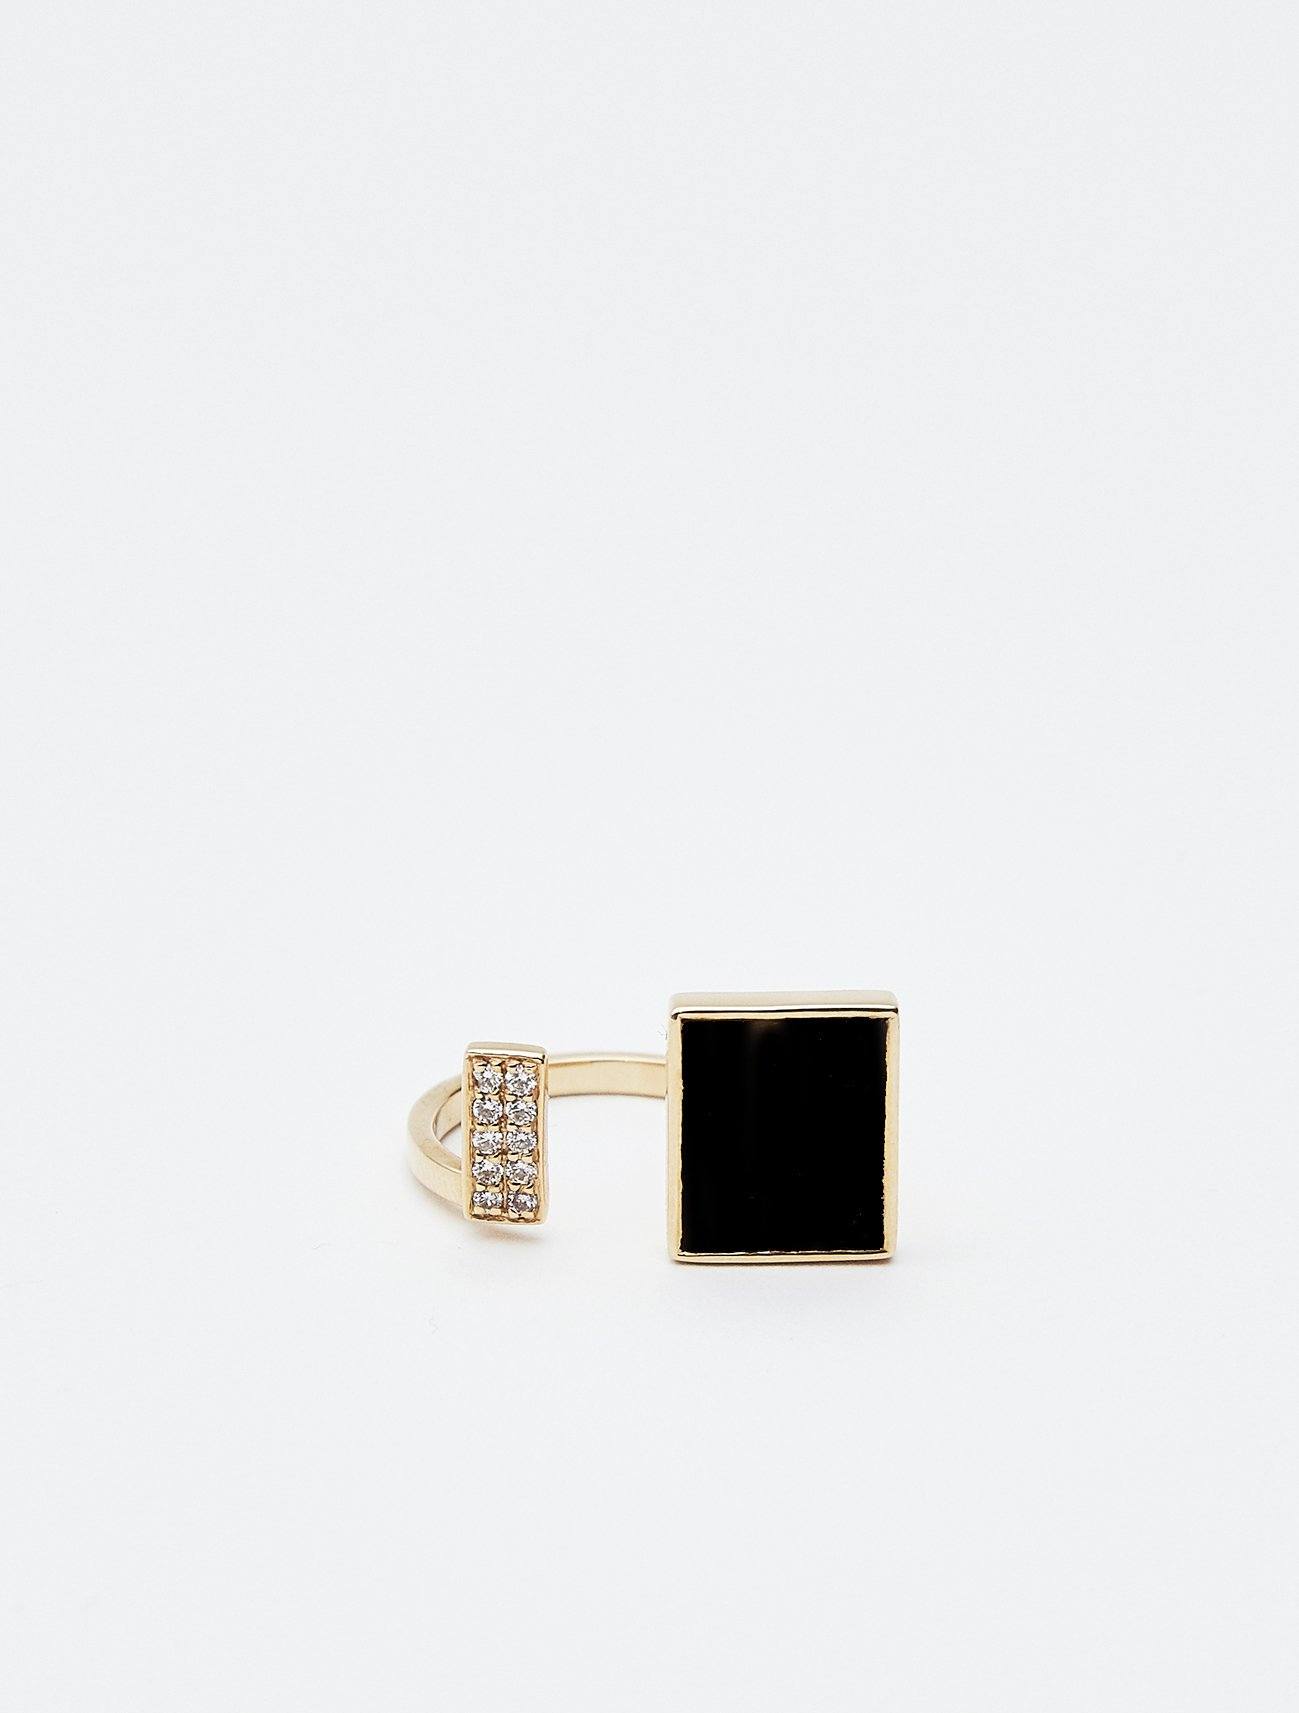 SOPHISTICATED VINTAGE / Open square ring 11号 / Onix, Diamond  在庫商品